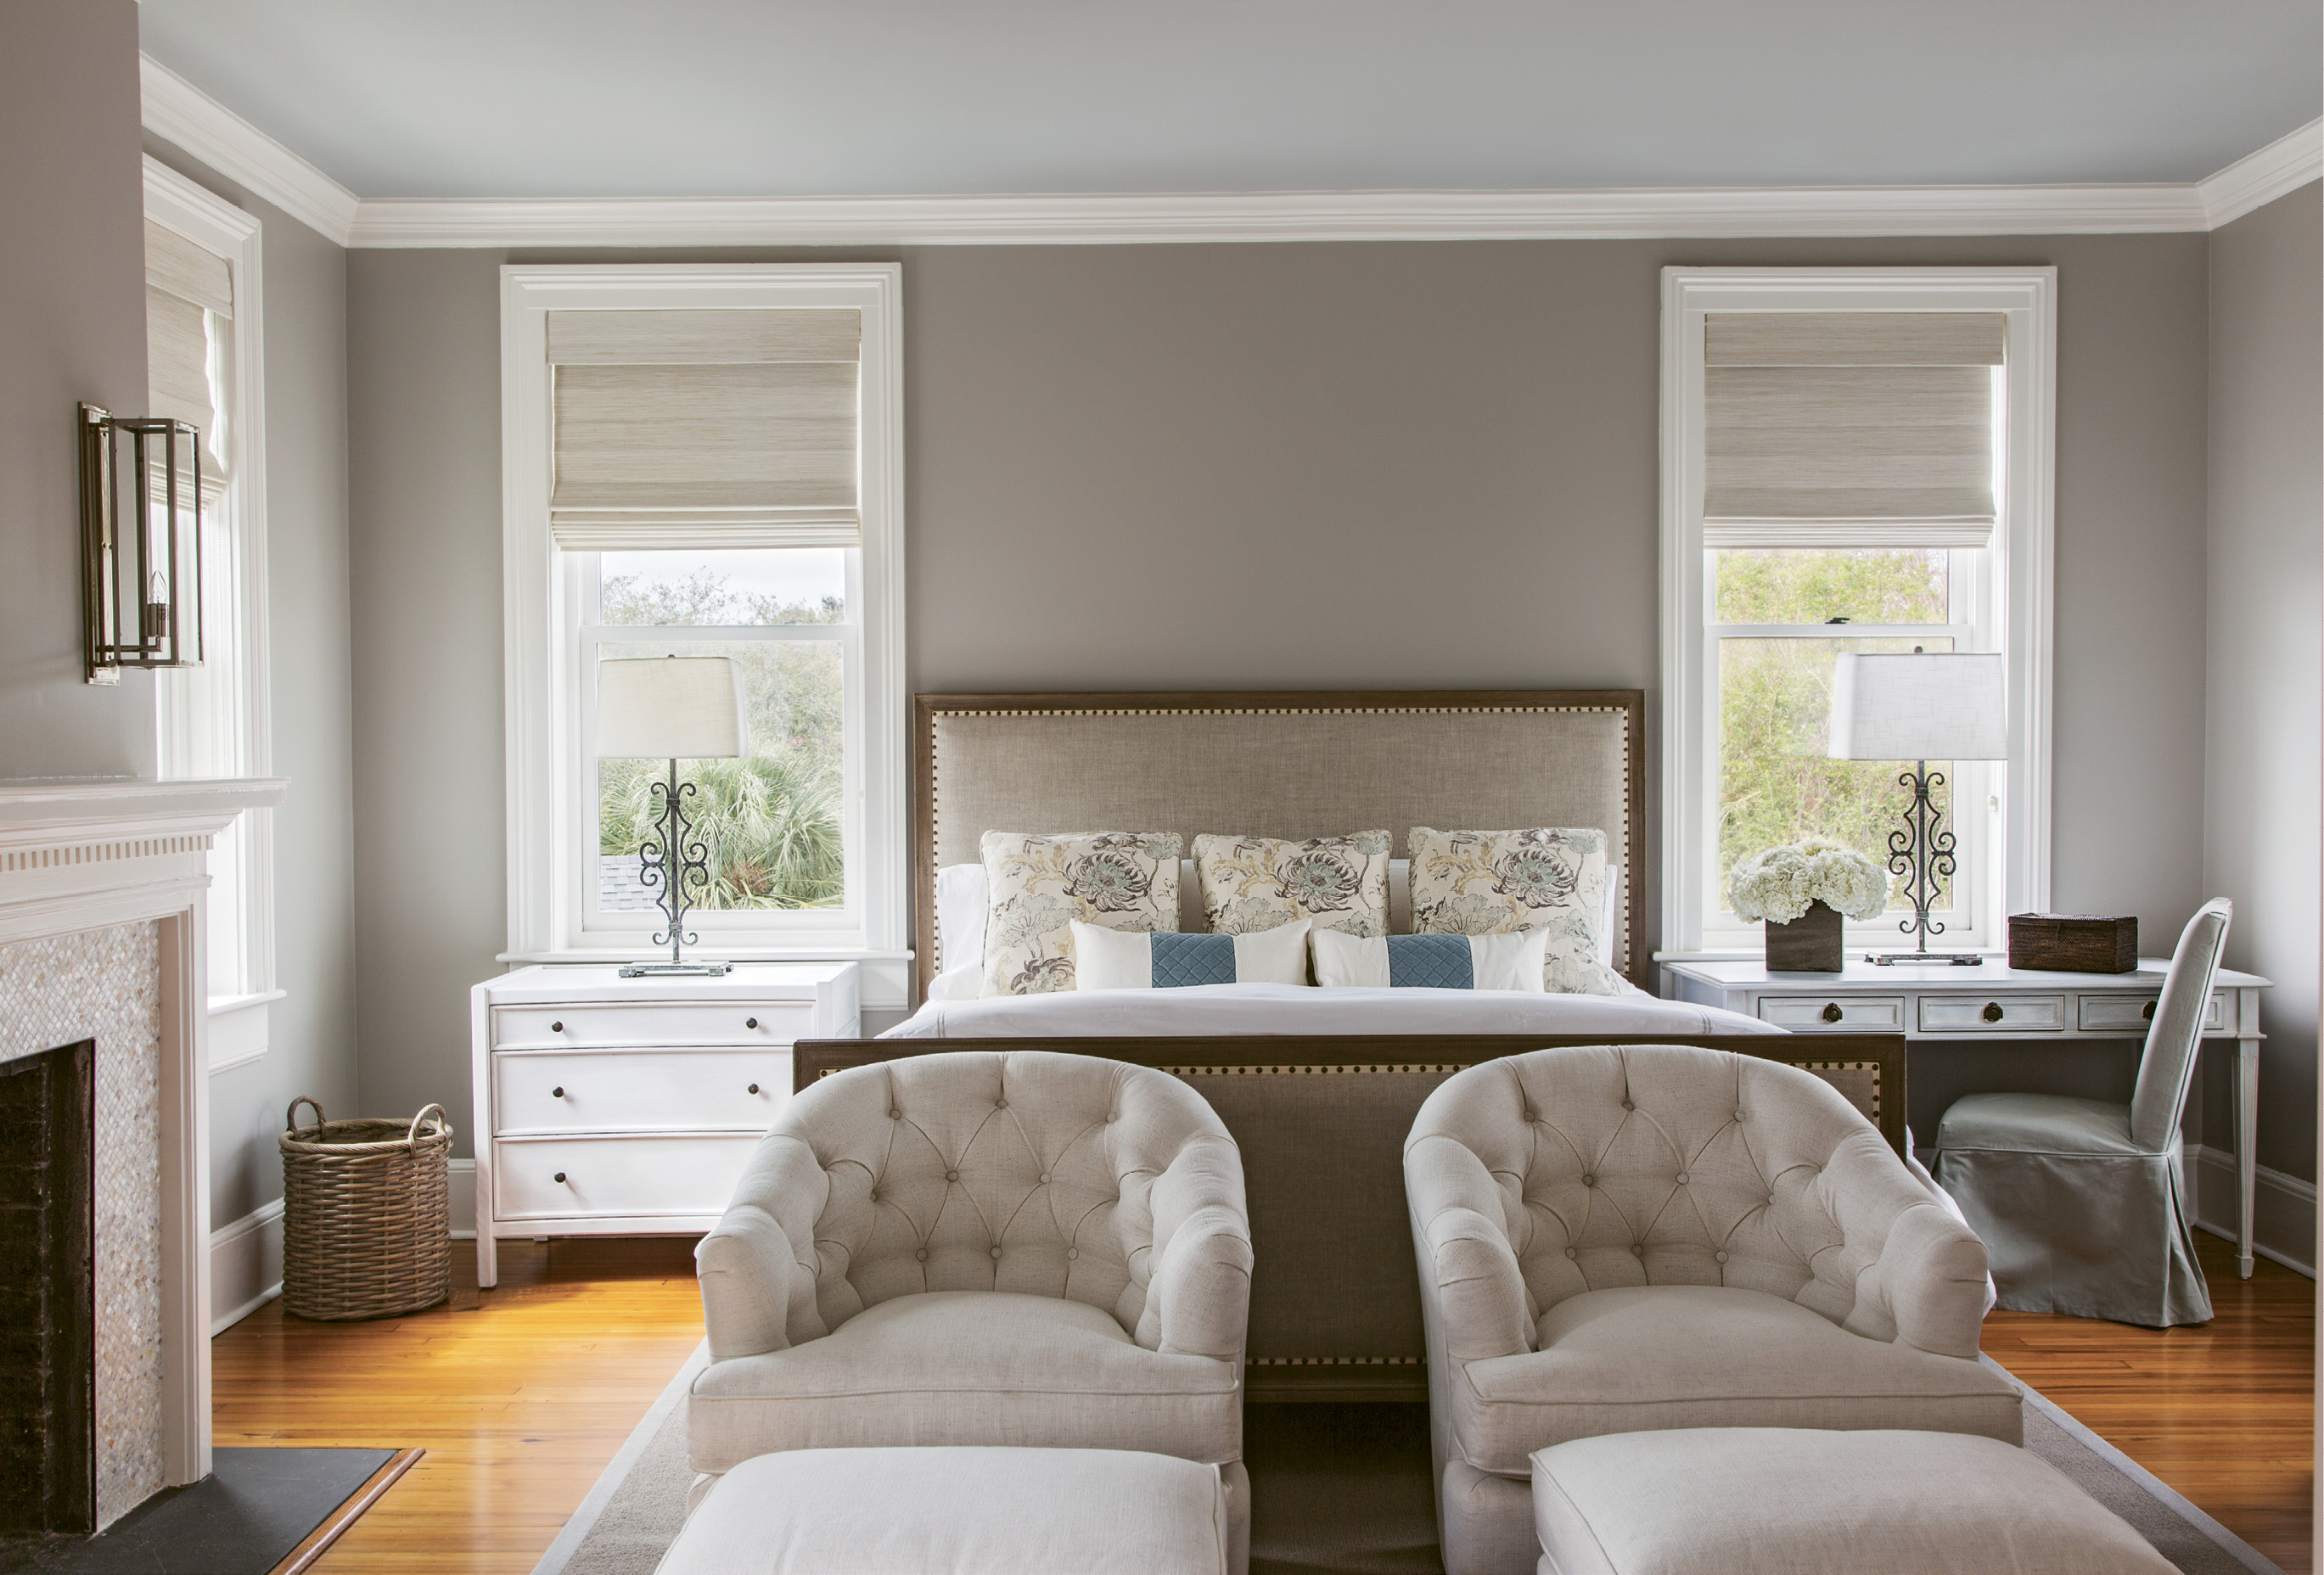 "Neutral Territory: For the master bedroom, Peake worked with a neutral palette conducive to relaxation: Benjamin Moore ""Cumulus Cloud"" covers the walls, with ""Half Moon Crest"" on the ceiling. The custom headboard was upholstered in Belgian linen. Natural woven shades provide privacy while still allowing for natural light."